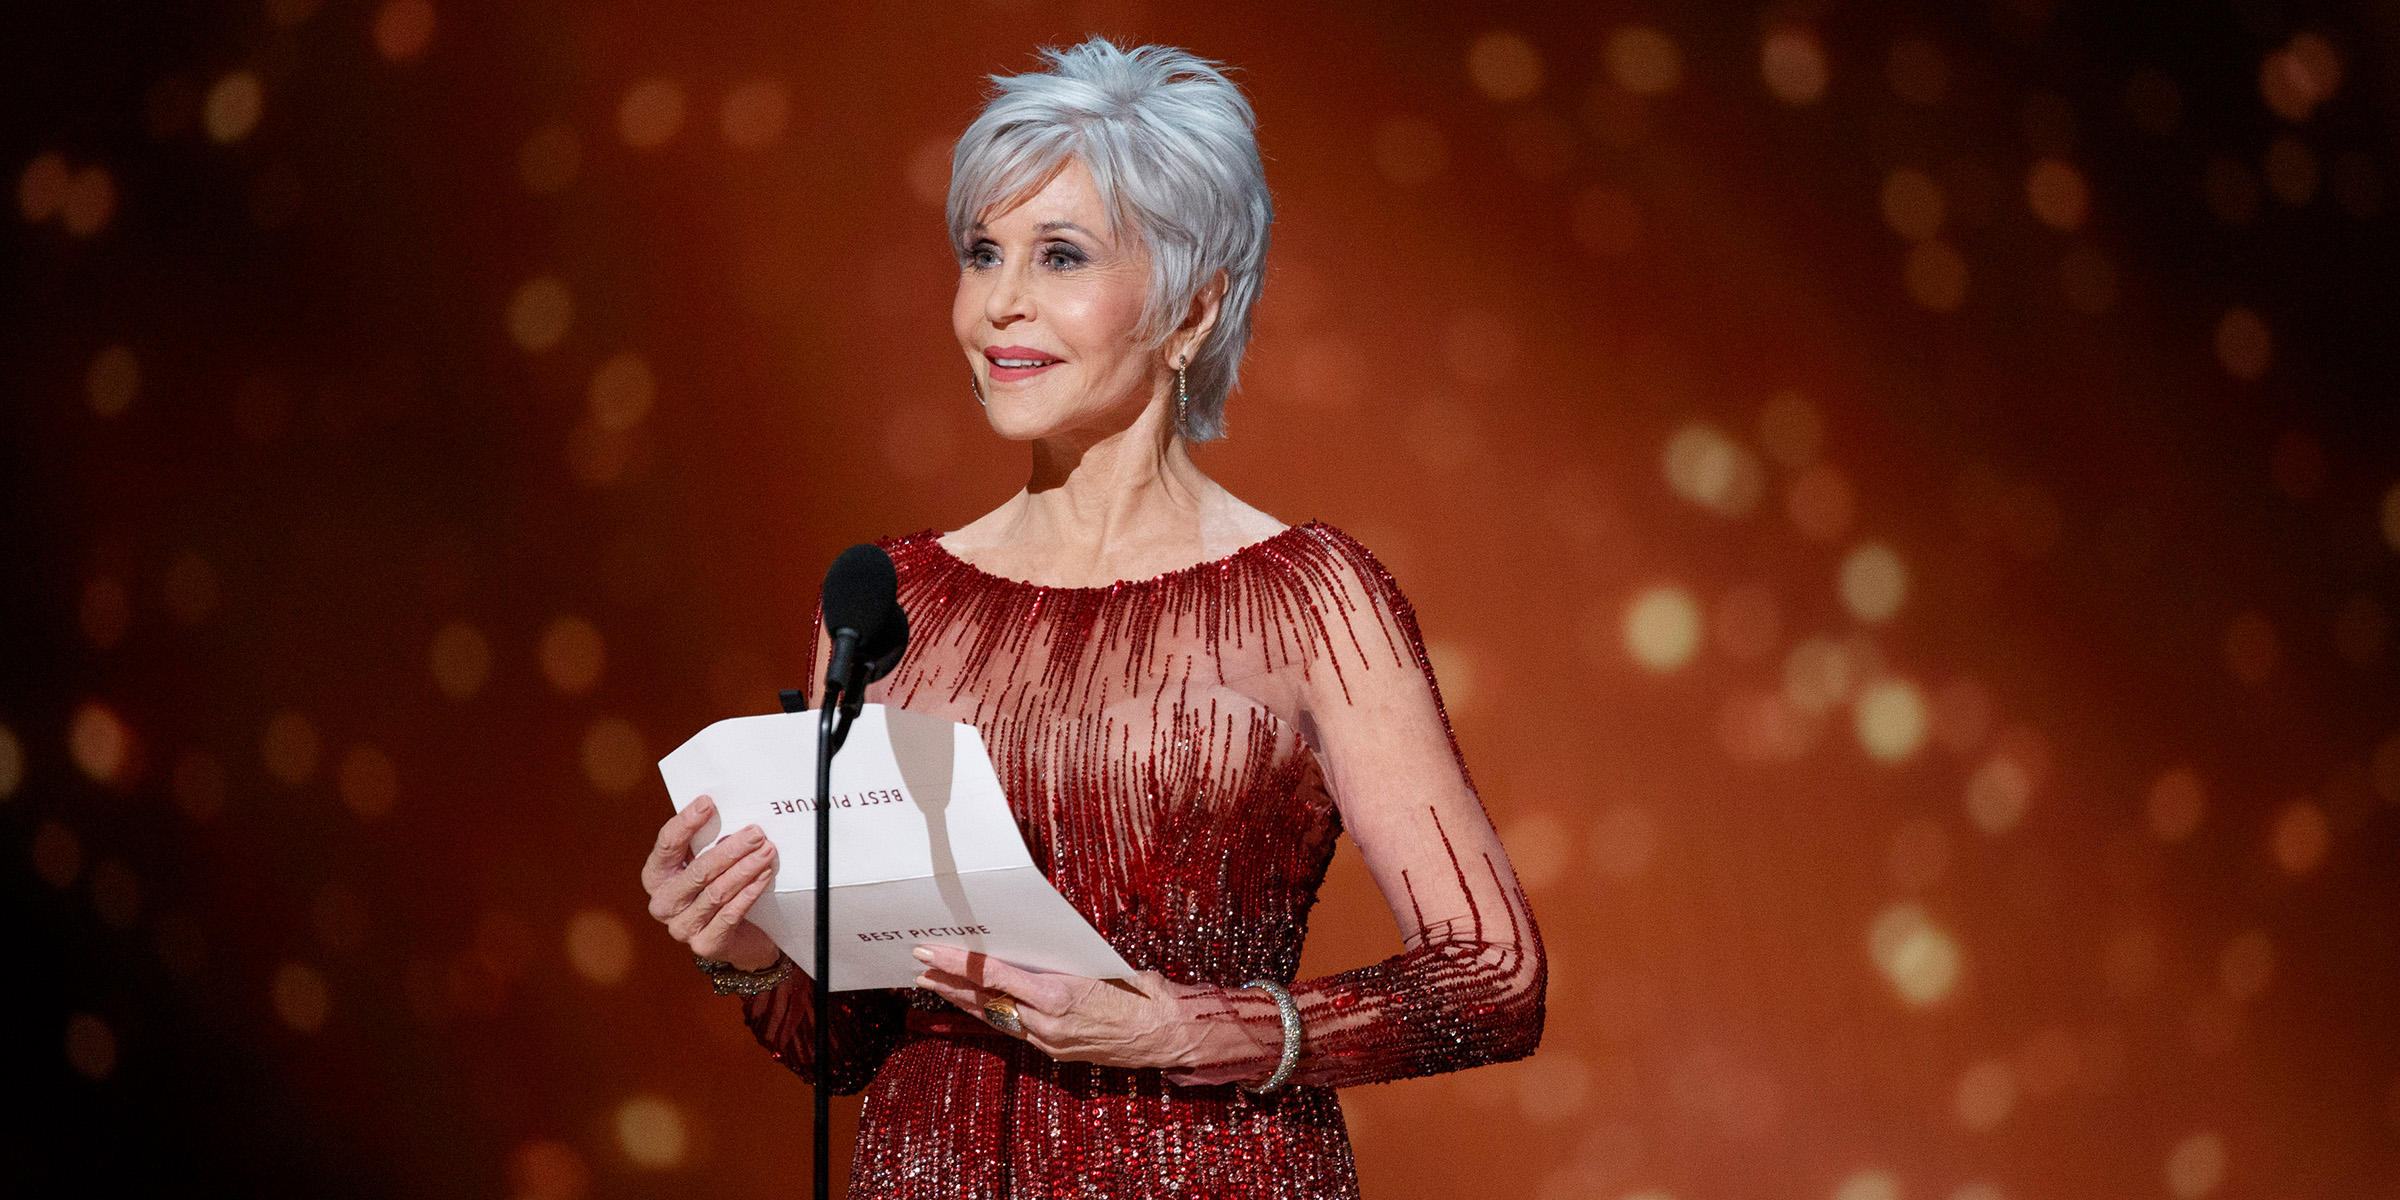 Jane Fonda Is Embracing A New Look At The Oscars Her Gray Hair